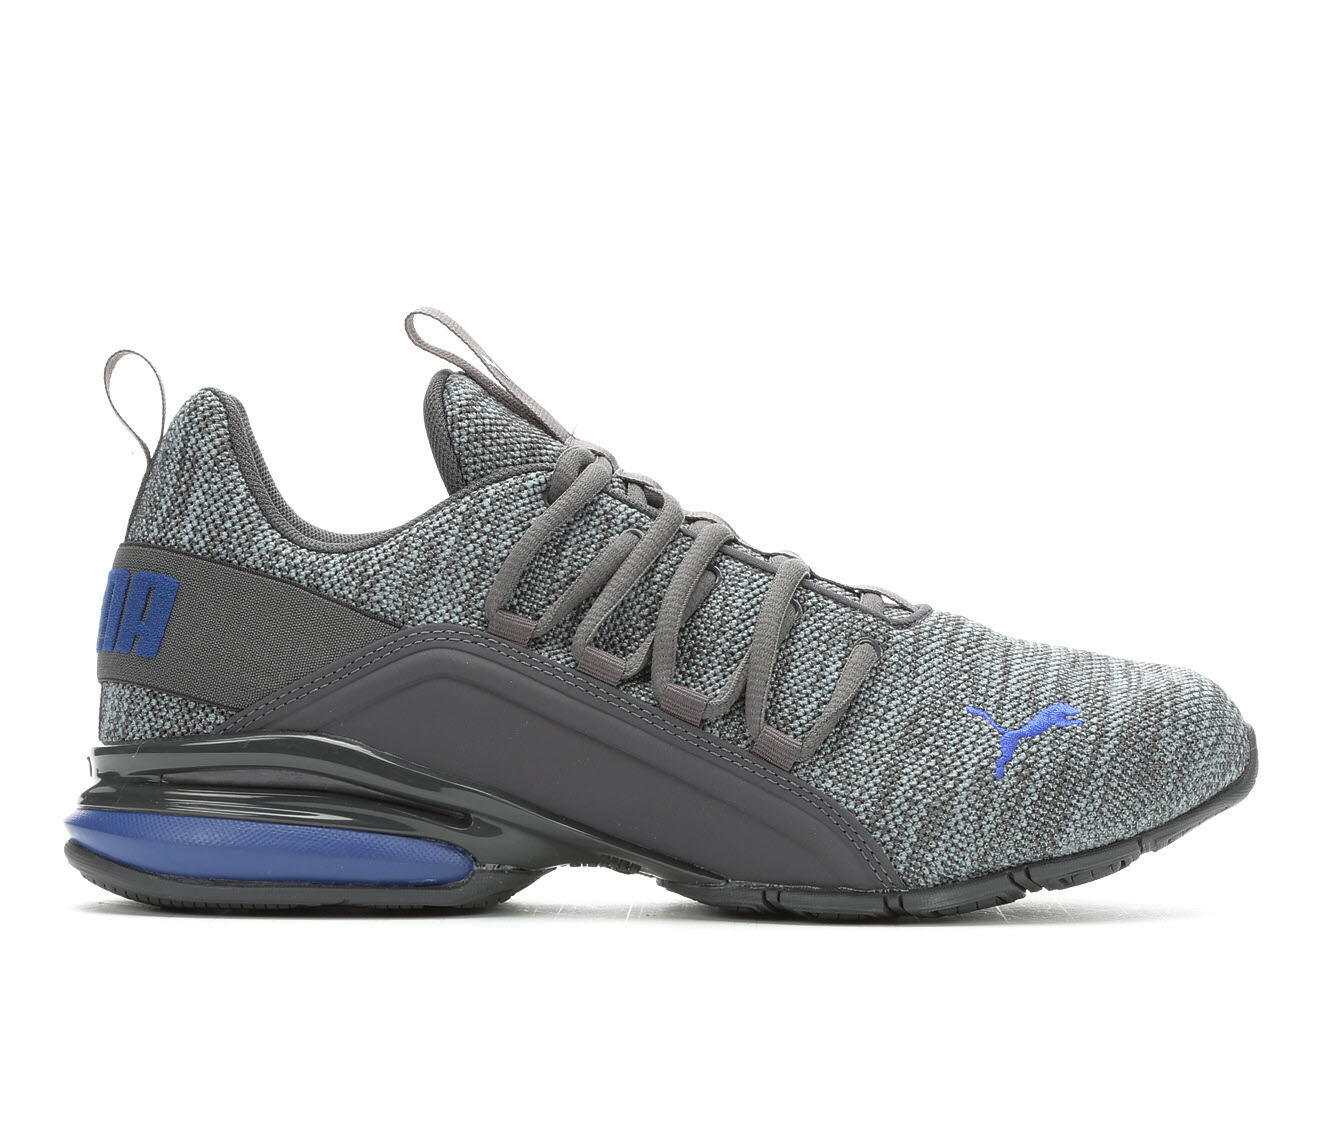 new arrivals Men's Puma Axelion Knit Sneakers Grey/Blue